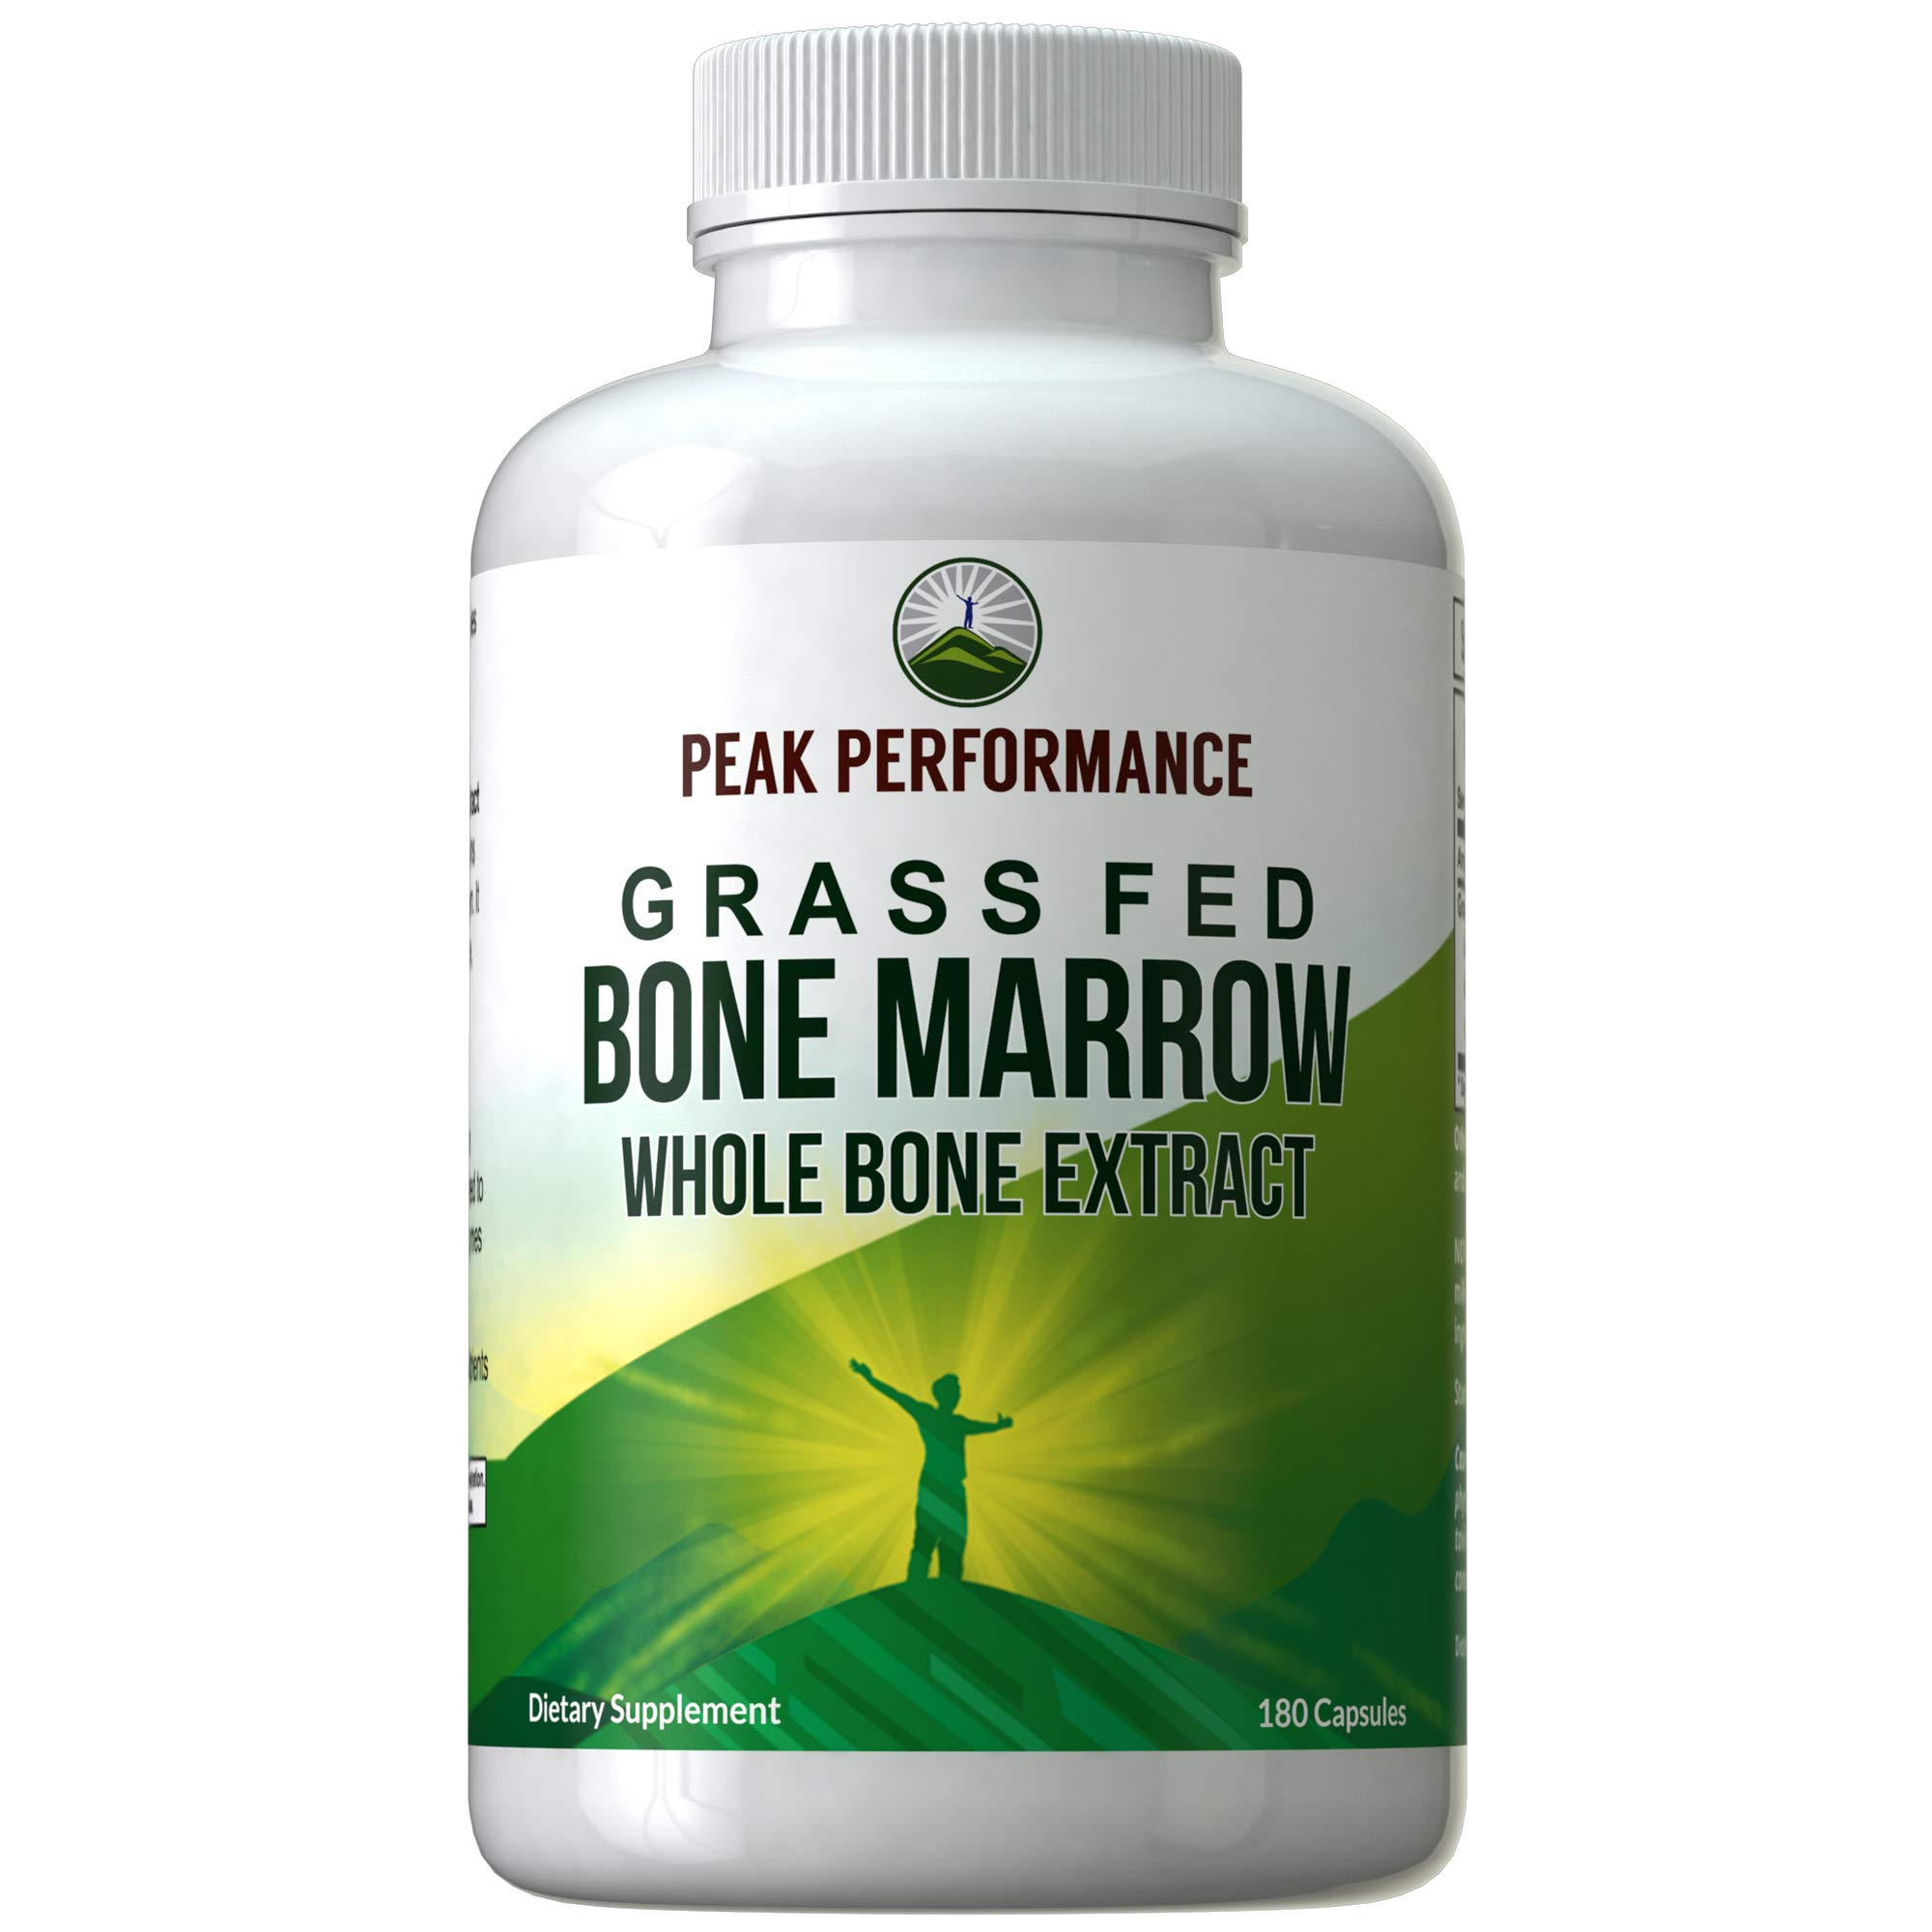 Grass Fed Bone Marrow - Whole Bone Extract Supplement 180 Capsules by Peak Performance. Superfood Pills Rich in Collagen, Vitamins, Amino Acids. from Bone Matrix, Marrow, Cartilage. Ancestral Tablets by Peak Performance